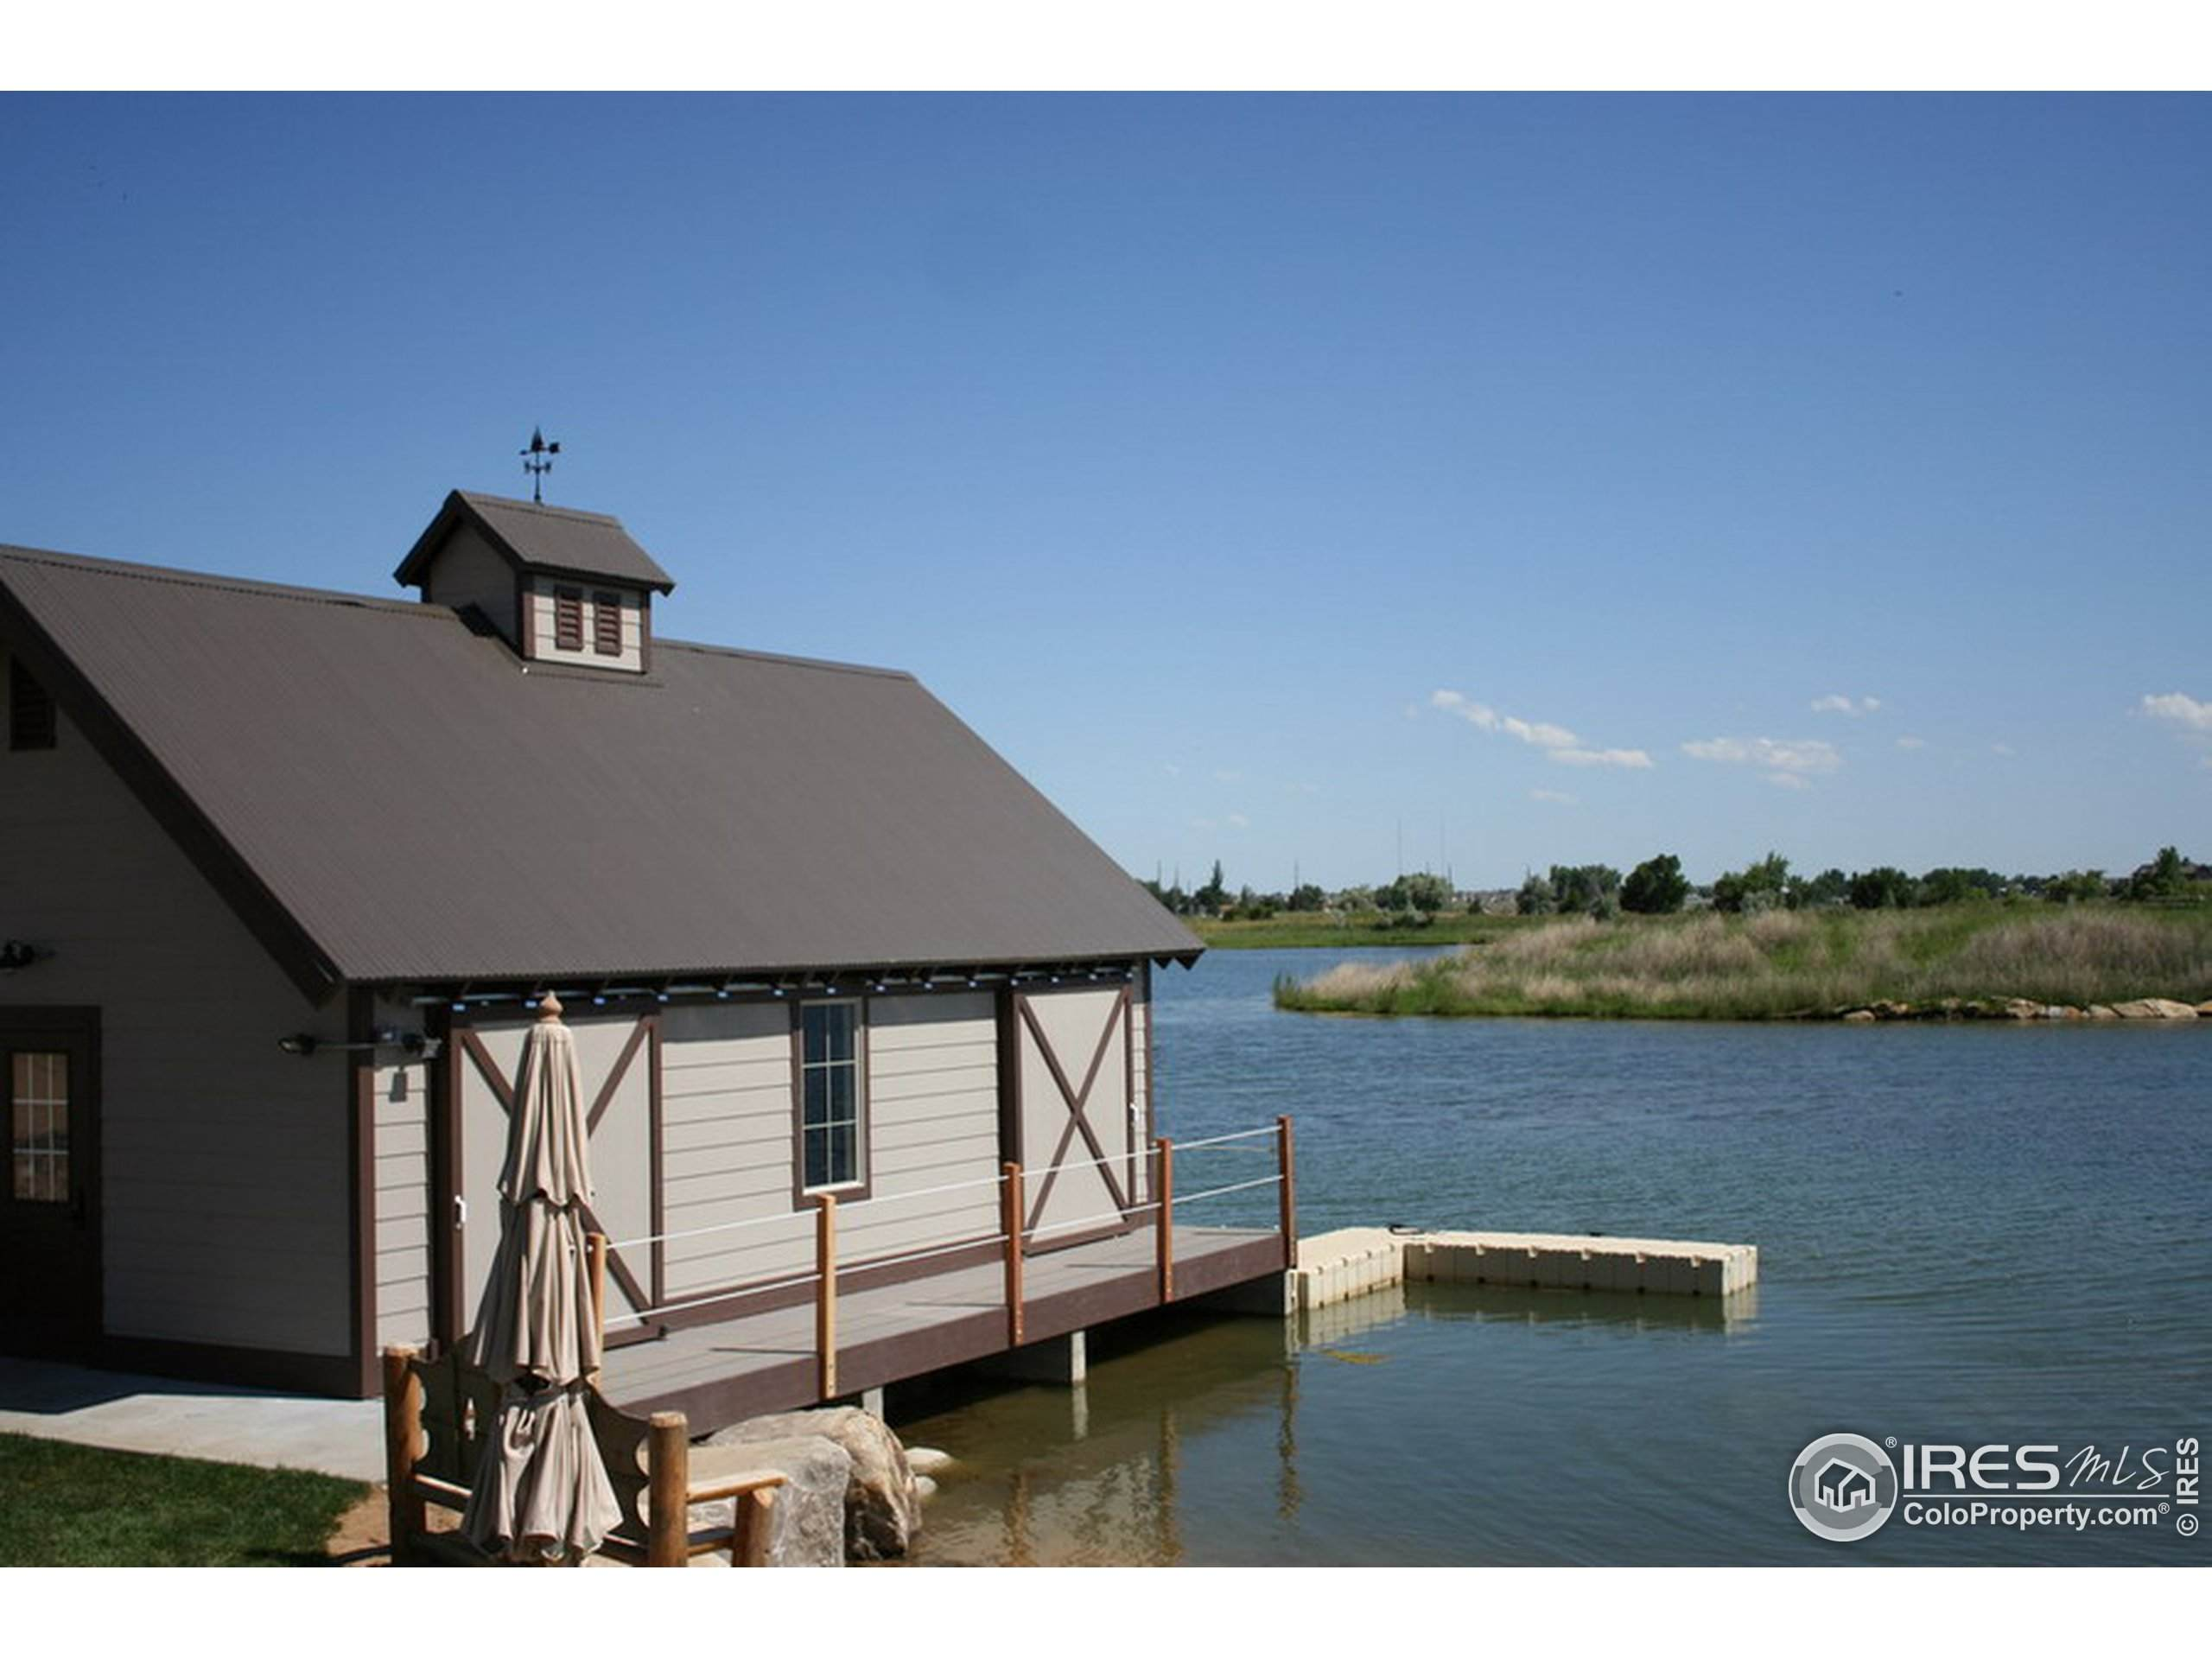 5565 Far View Ct, Windsor, CO 80550 (#938904) :: Re/Max Structure